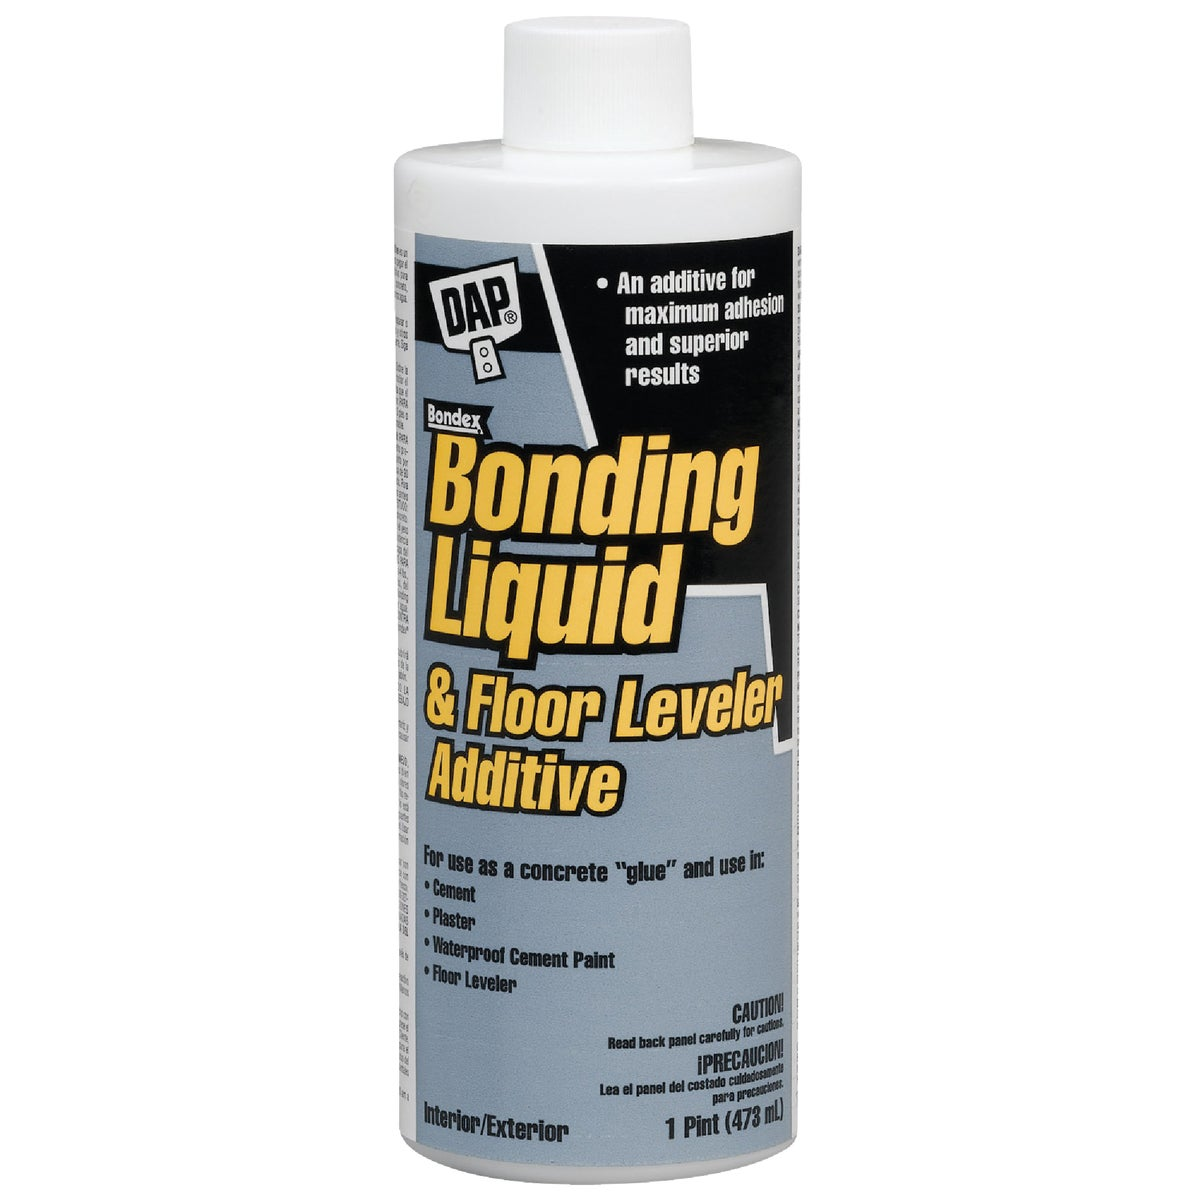 PINT BONDING LIQUID - 35082 by Dap Inc